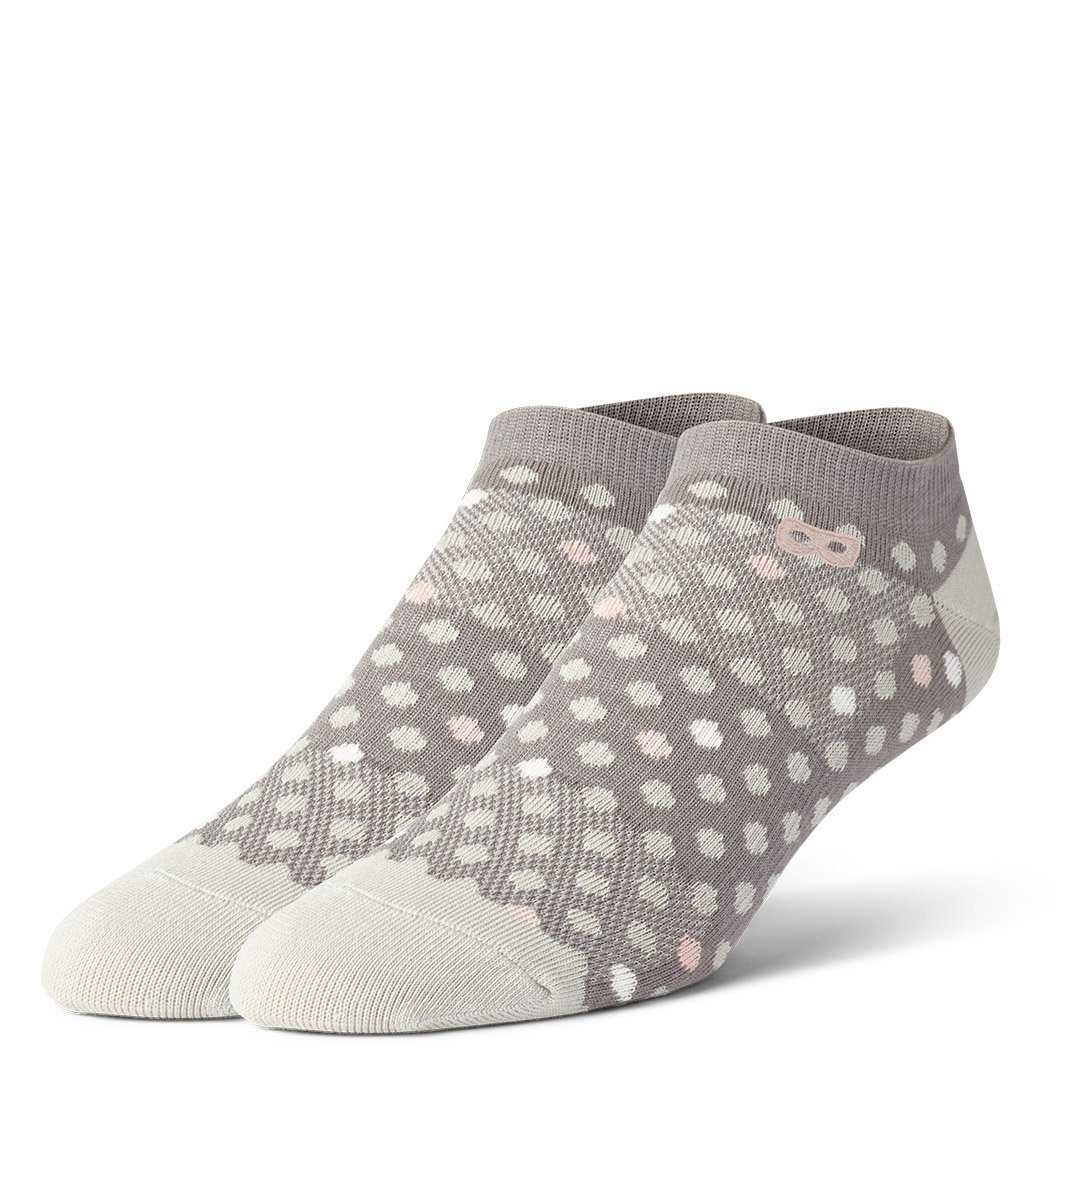 Whoa Women's Low-Cut Socks